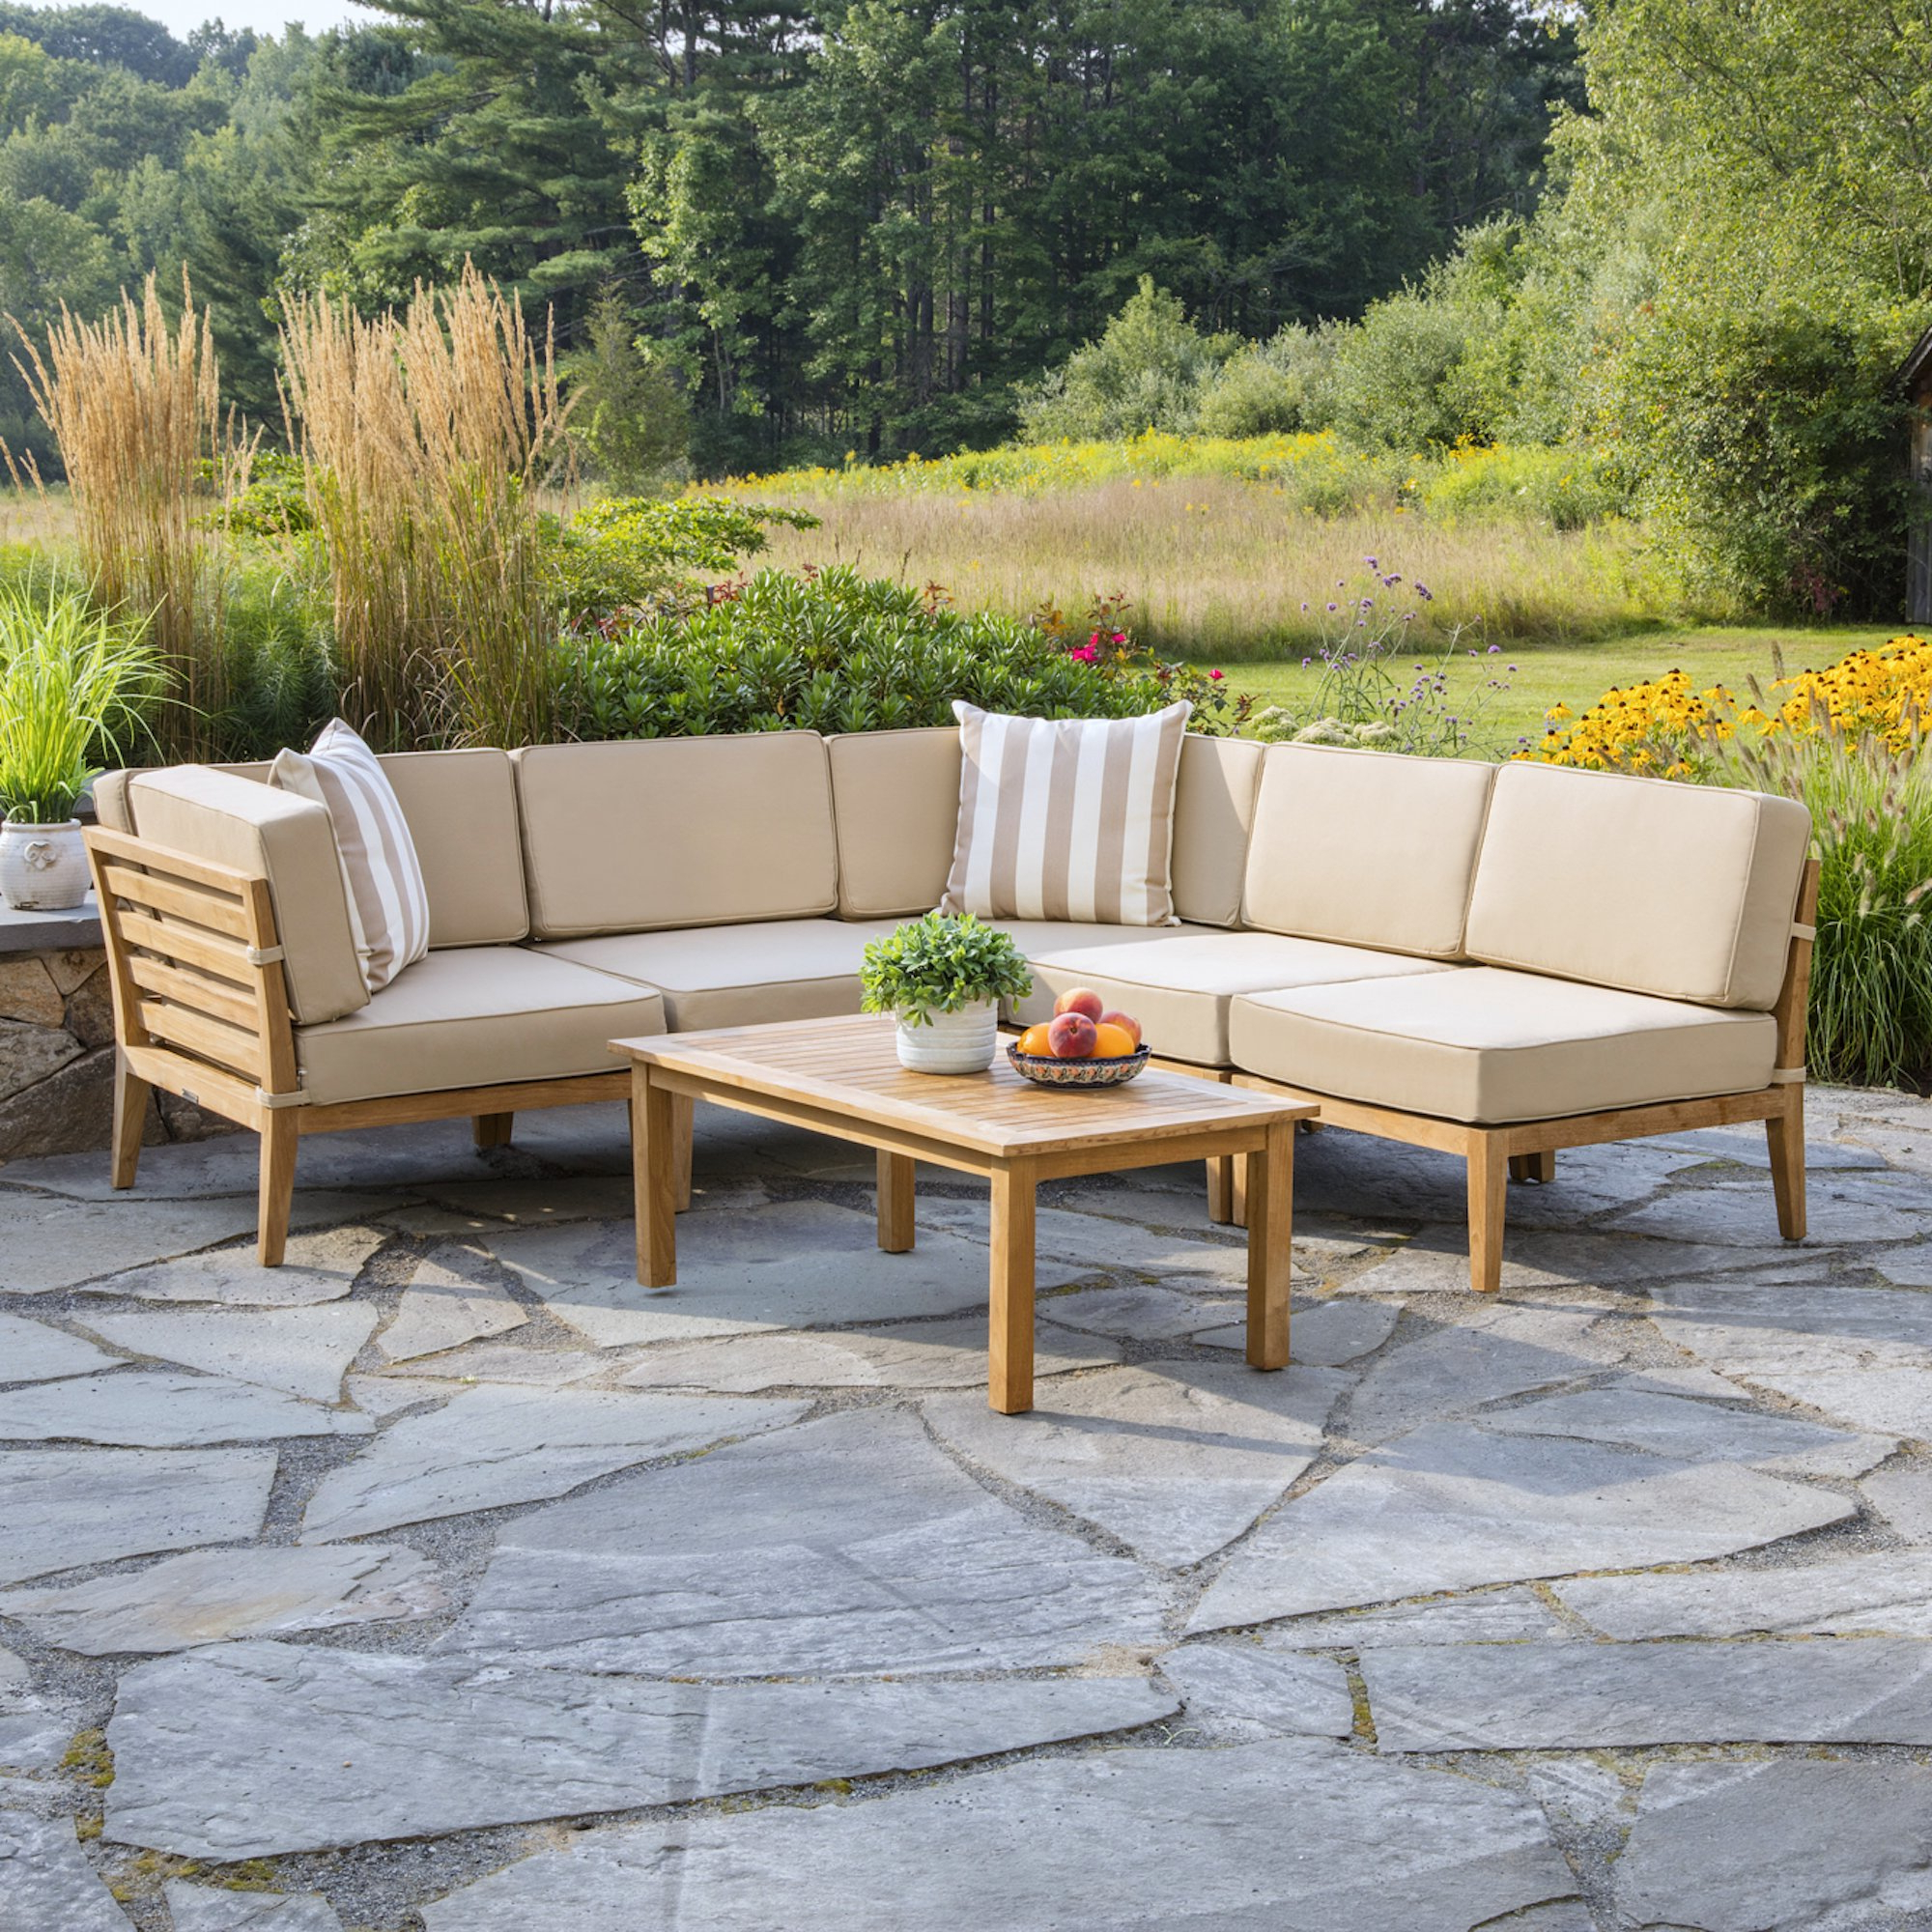 Trendy Bali 6 Piece Teak Sectional Set With Cushions With Regard To Antonia Teak Patio Sectionals With Cushions (View 15 of 25)